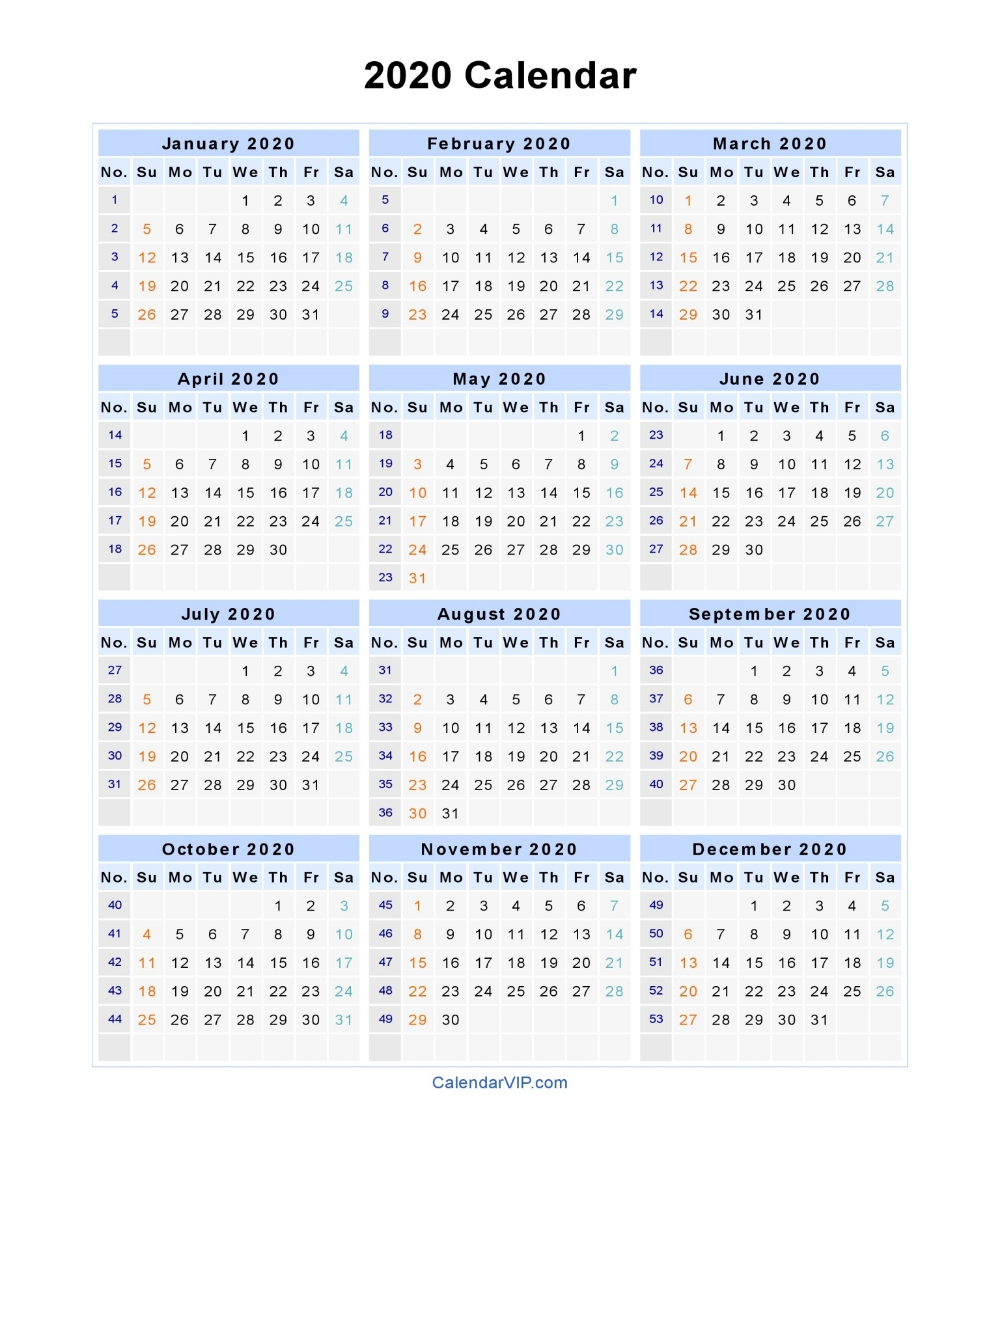 2020 Calendar - Blank Printable Calendar Template In Pdf regarding Week Numbers 2020 Excel